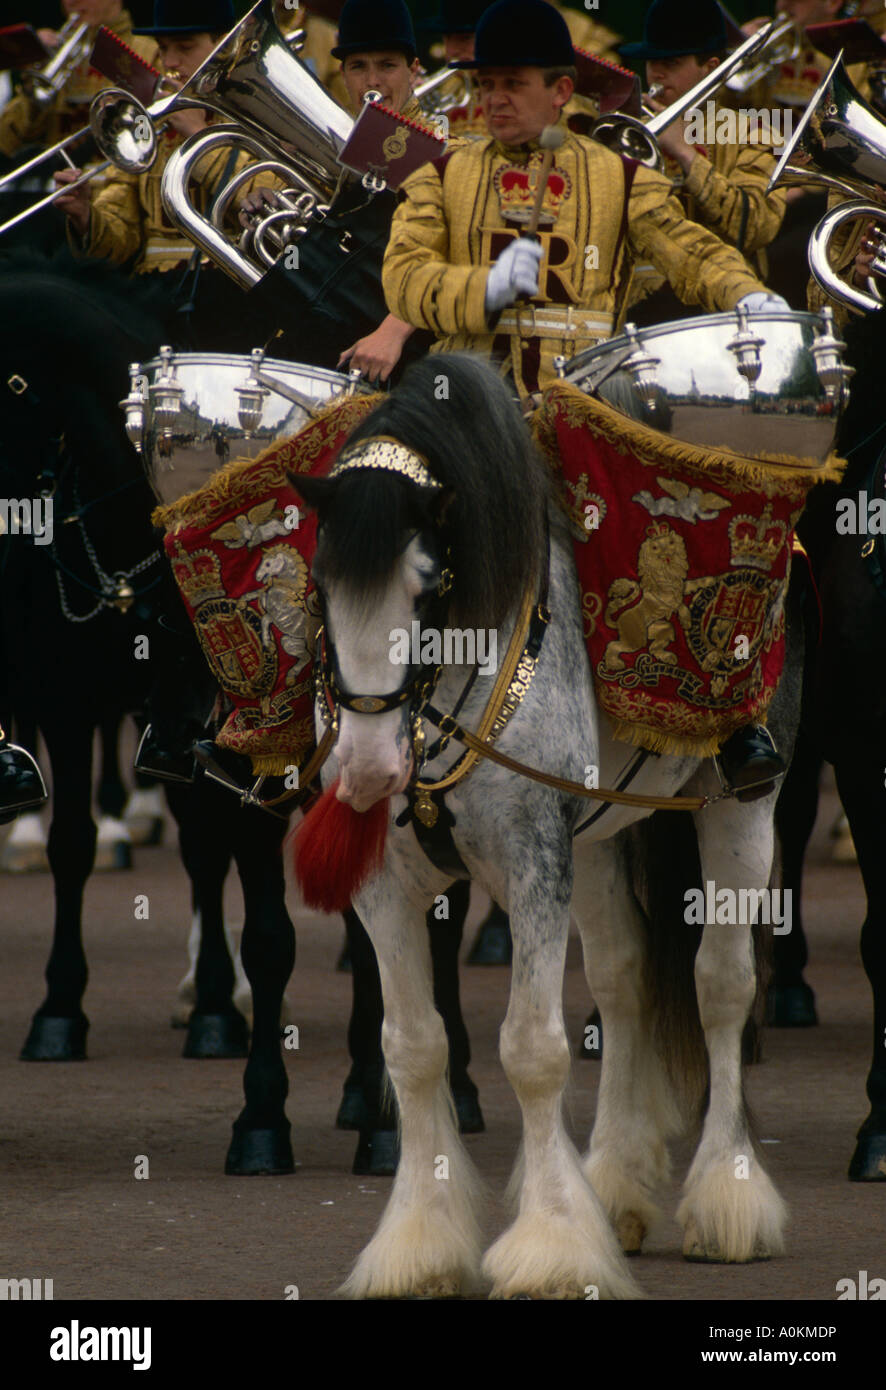 The band of the Life Guards Household Cavalry parade down The Mall in London, at the annual Trooping the Colour Stock Photo